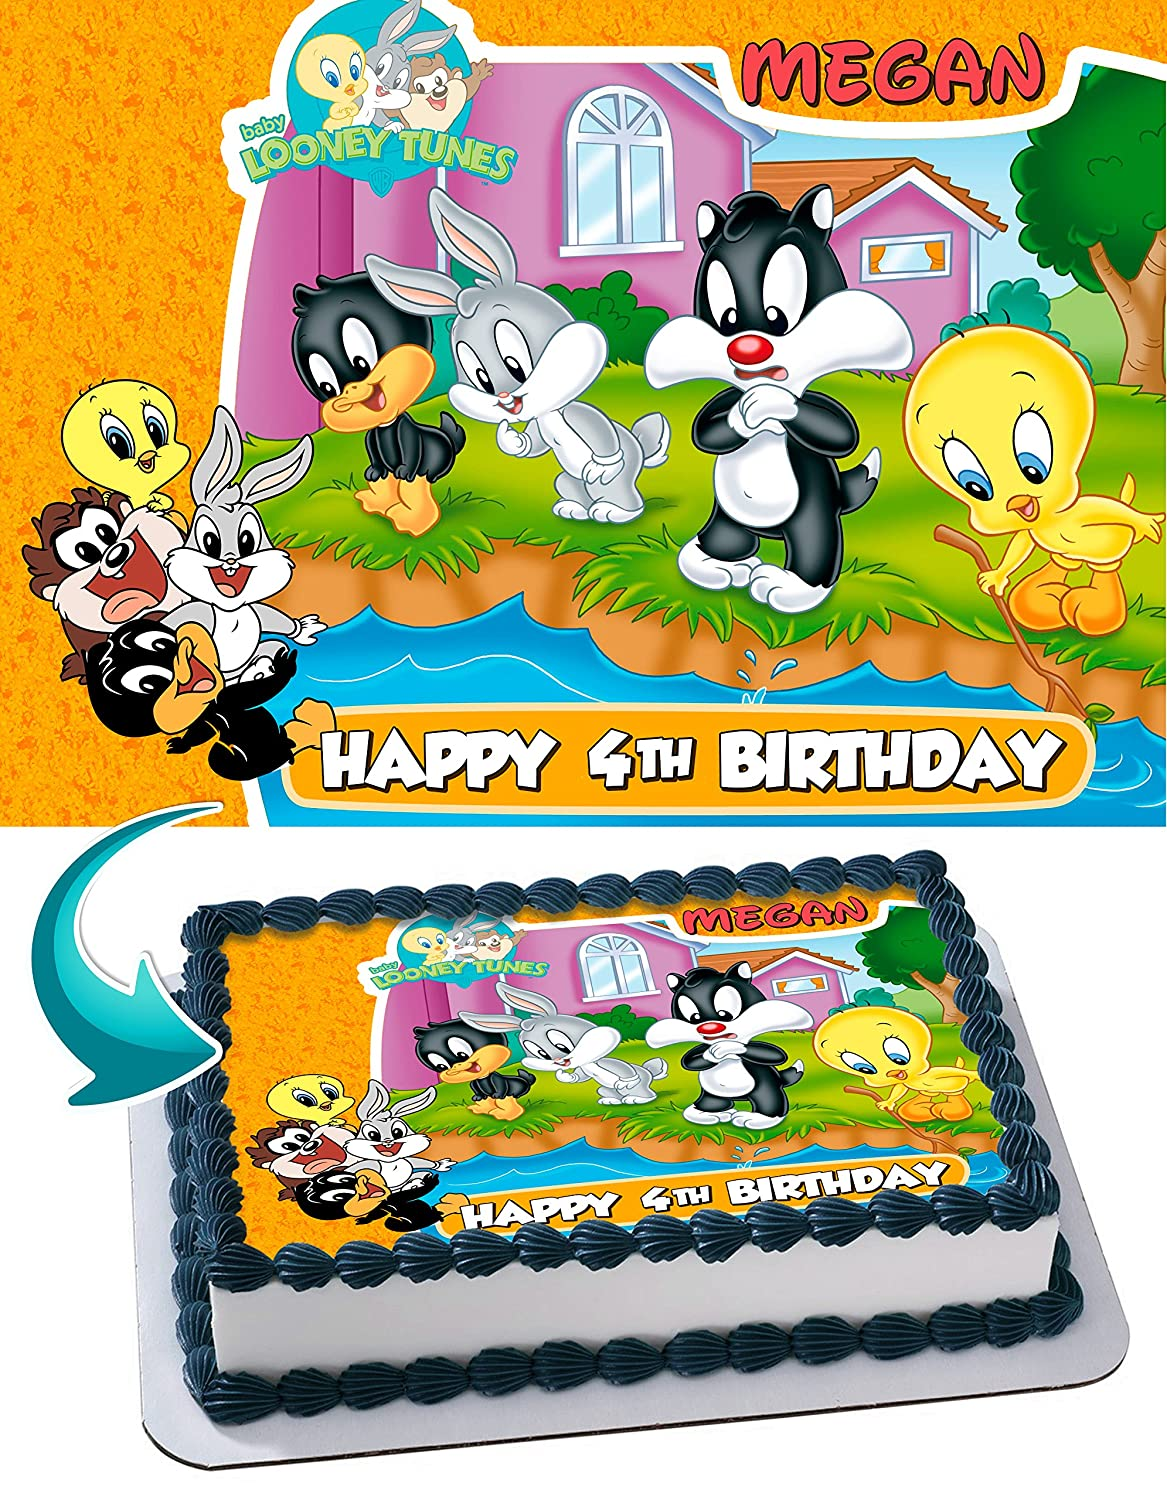 Baby Looney Tunes Edible Cake Topper Personalized Birthday 1 4 Sheet